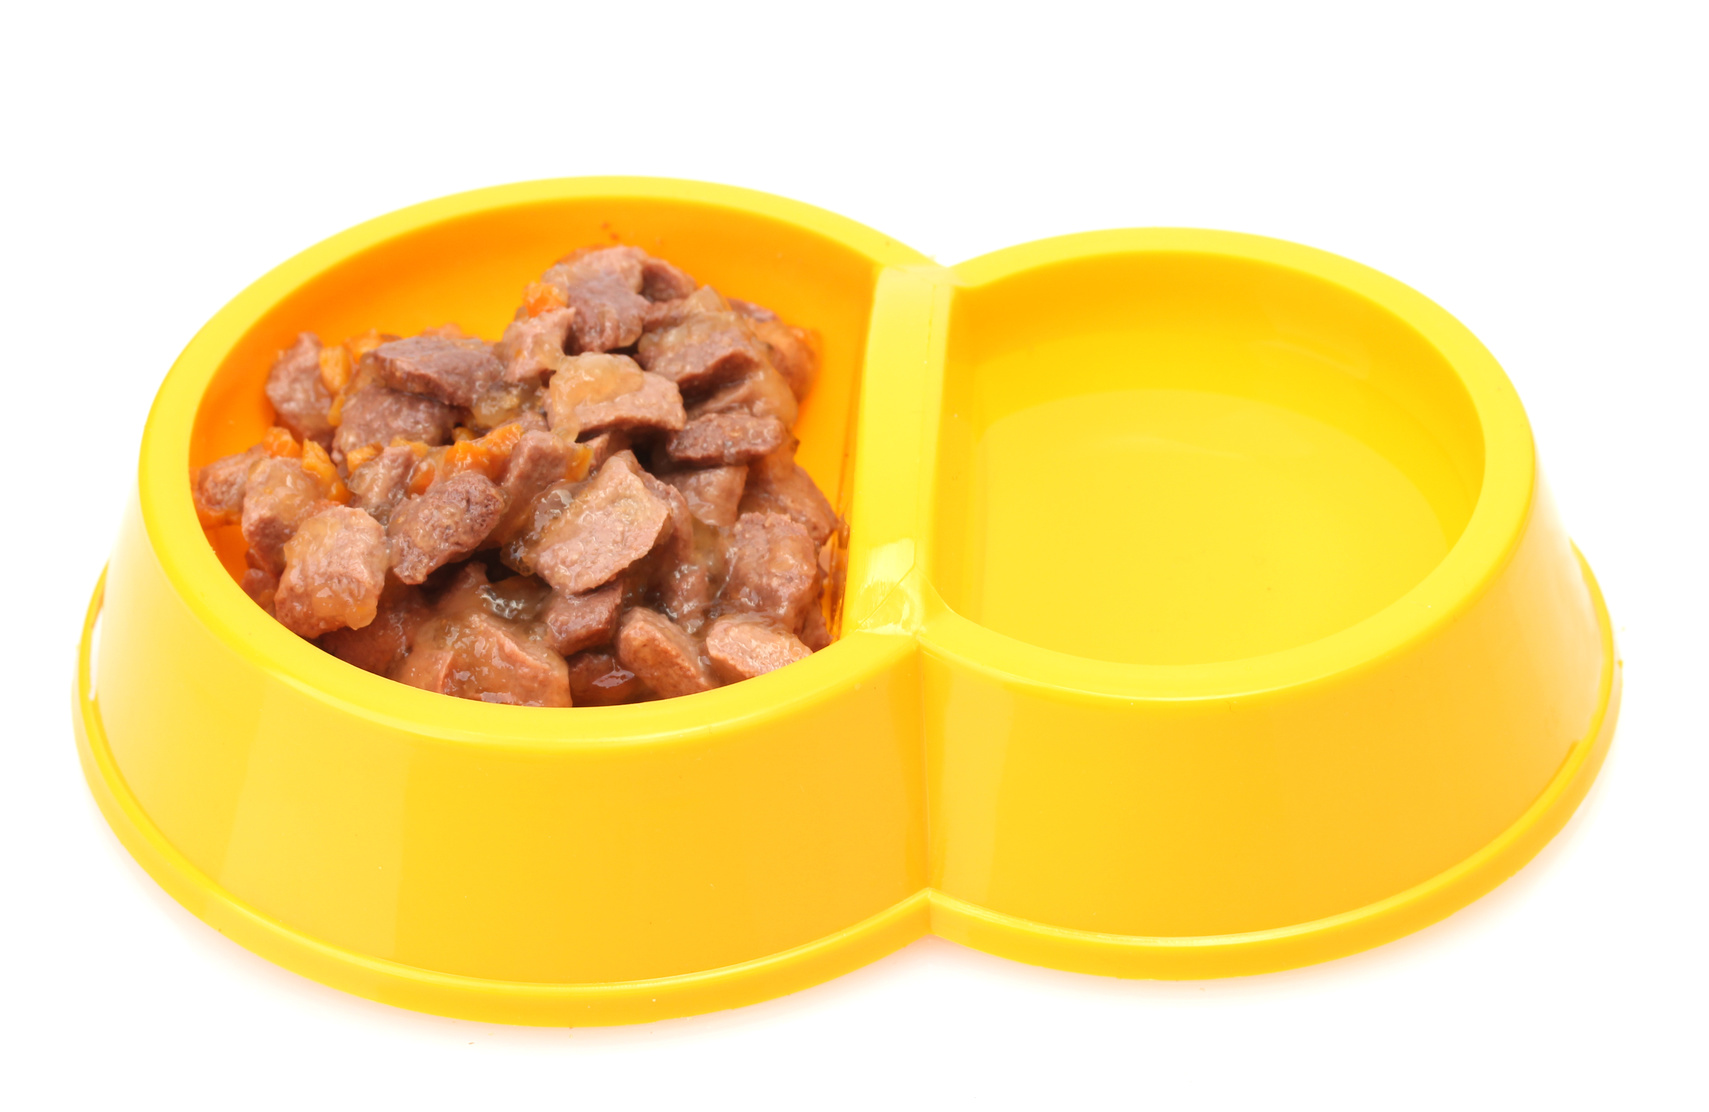 Dog Dragging Food From Bowl